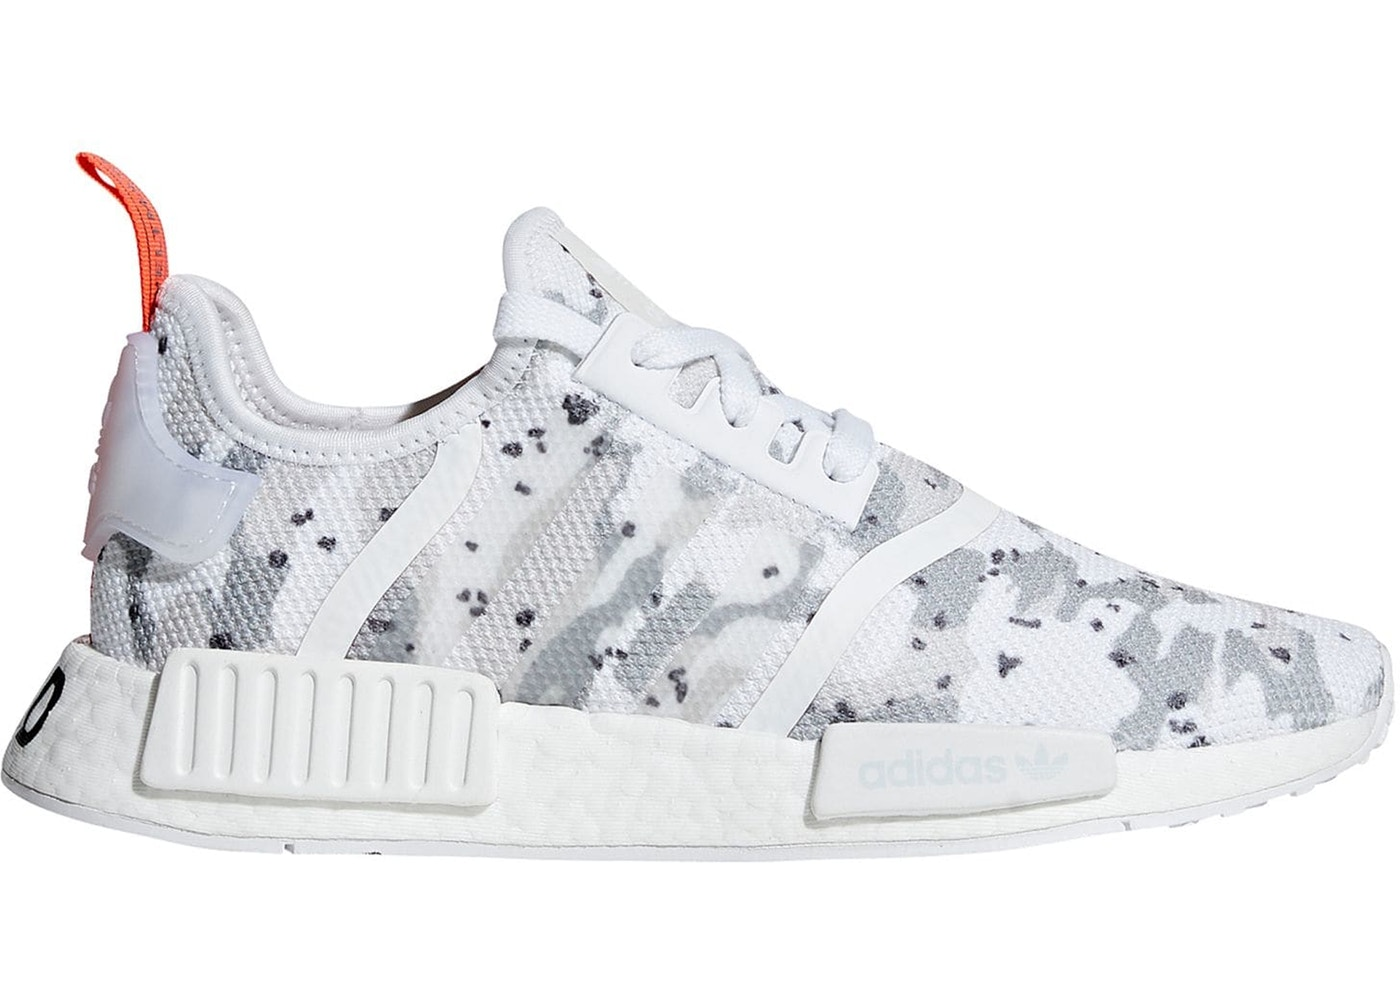 87c8cfbef2f57 adidas NMD Size 5 Shoes - Release Date